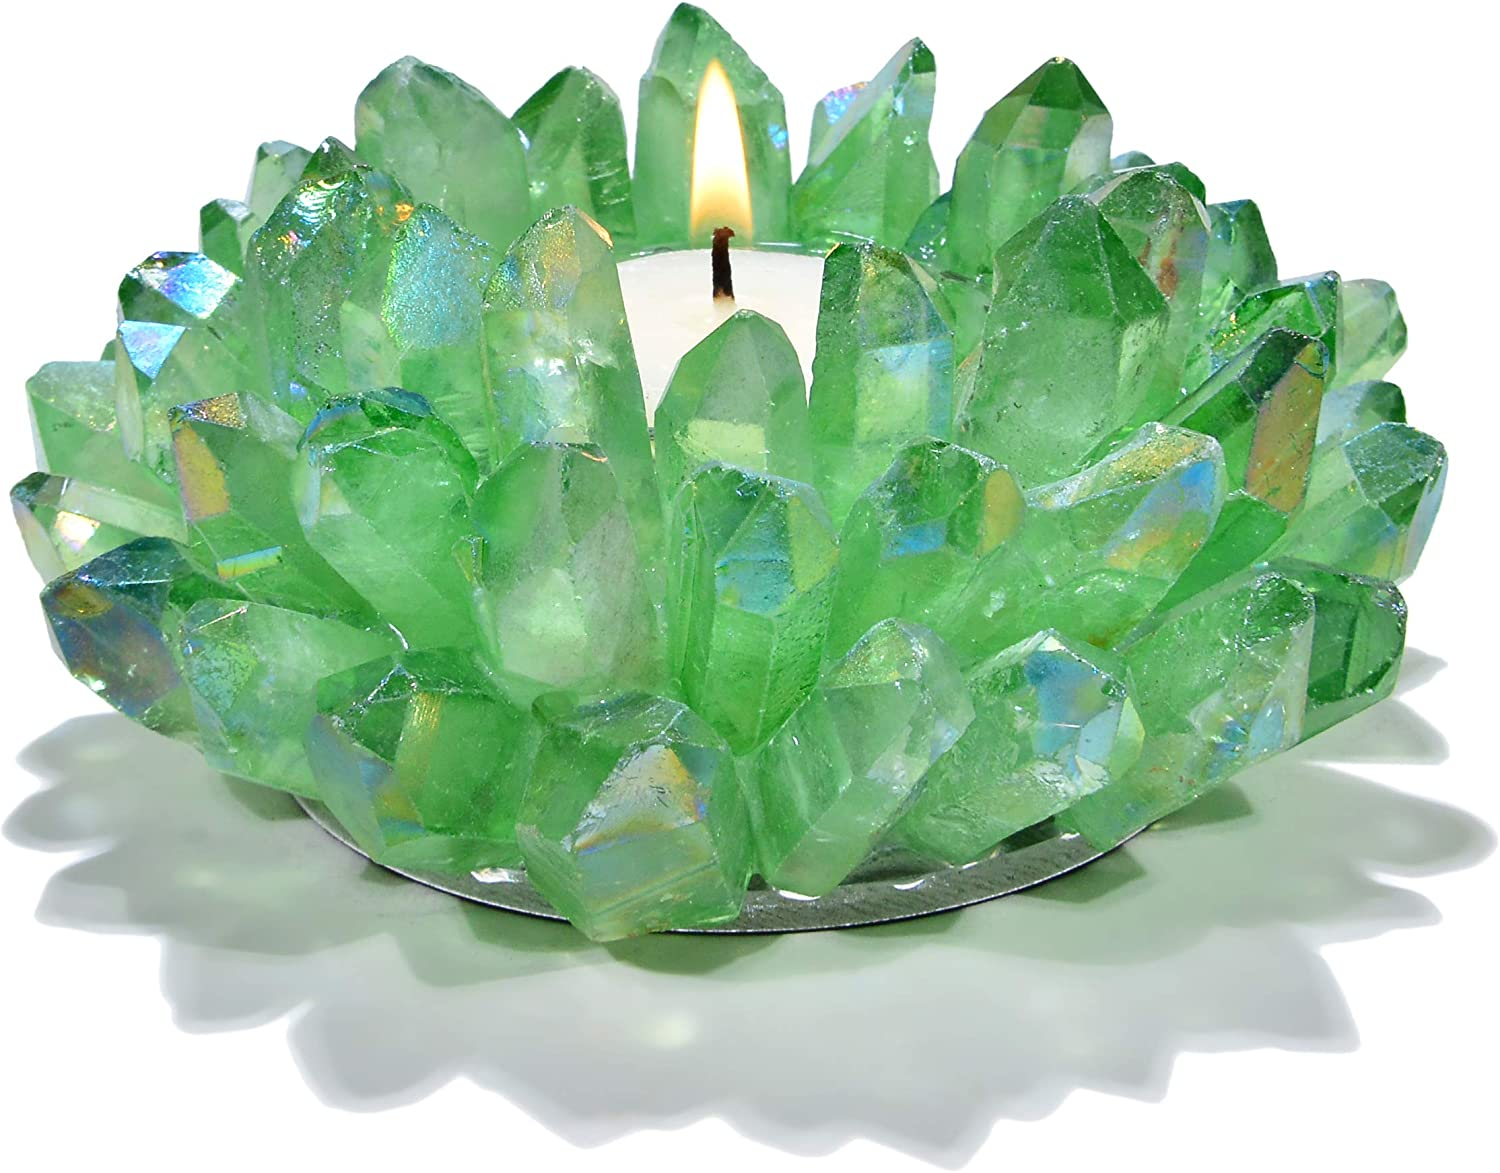 KALIFANO Green Apple Aura Quartz Cluster Crystal Tealight Candle Holder - Decorative High Energy Geode Votive with Healing Effects